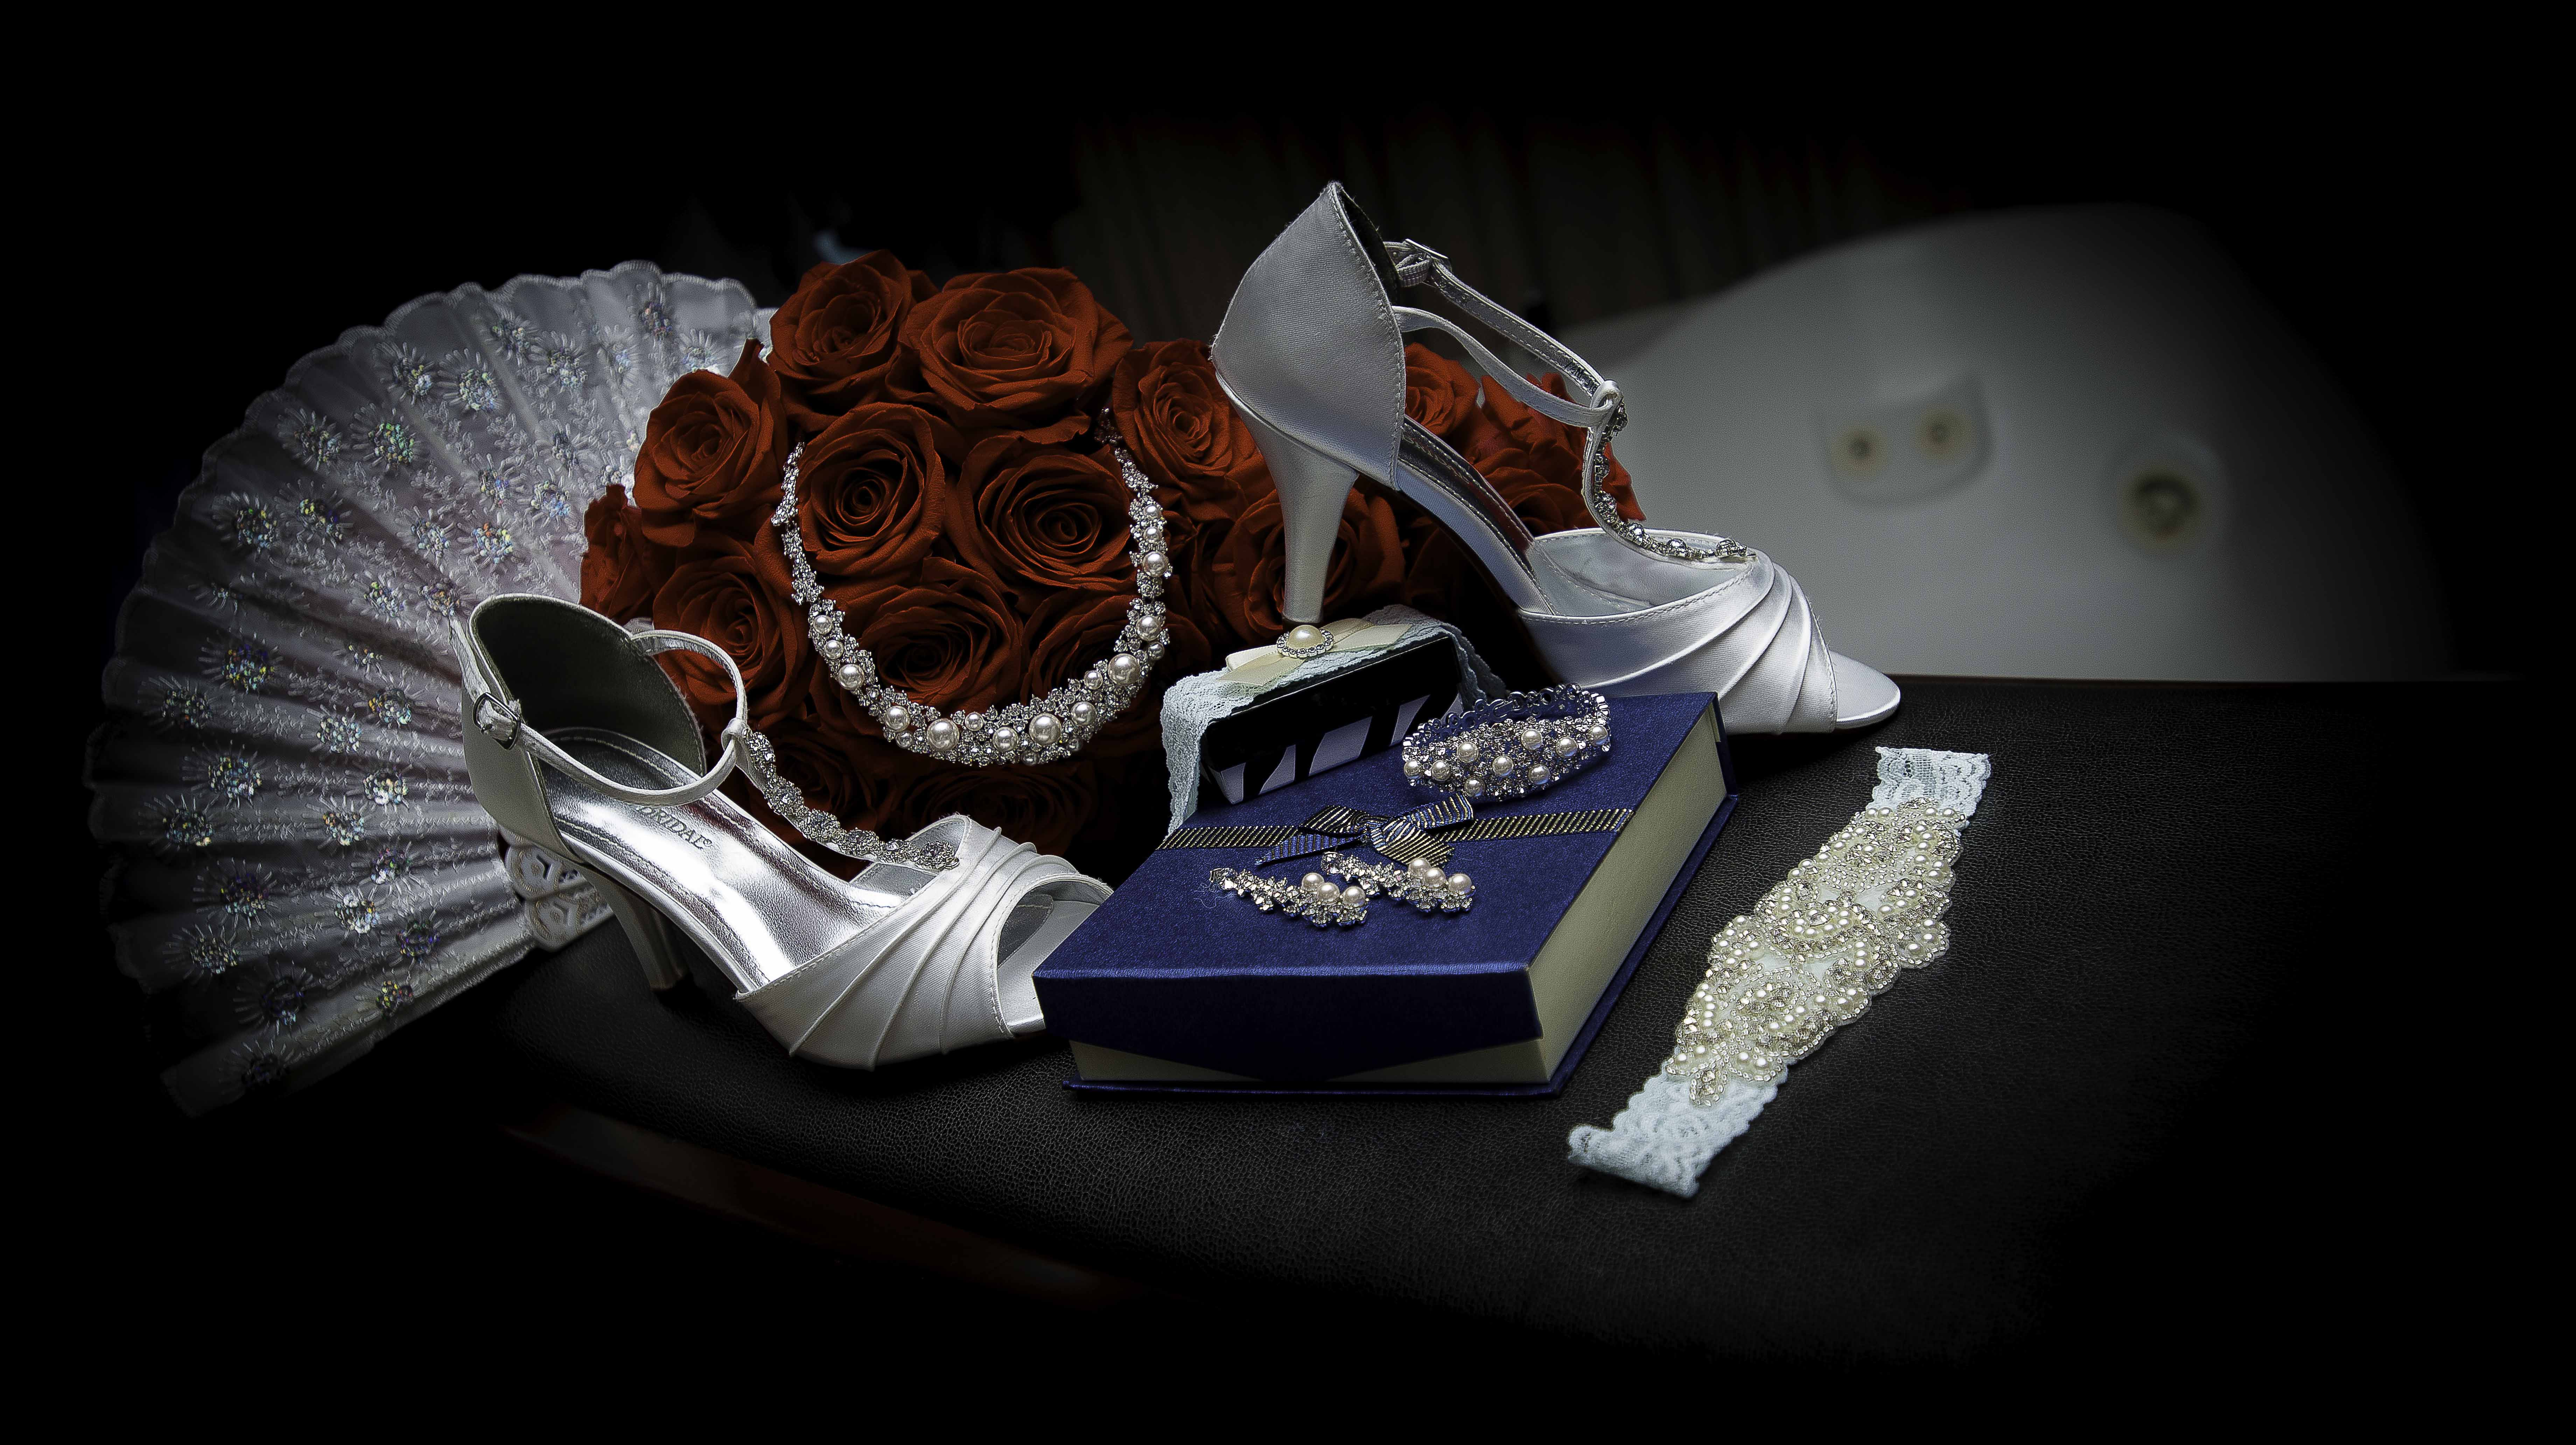 Wedding Photography with cloth